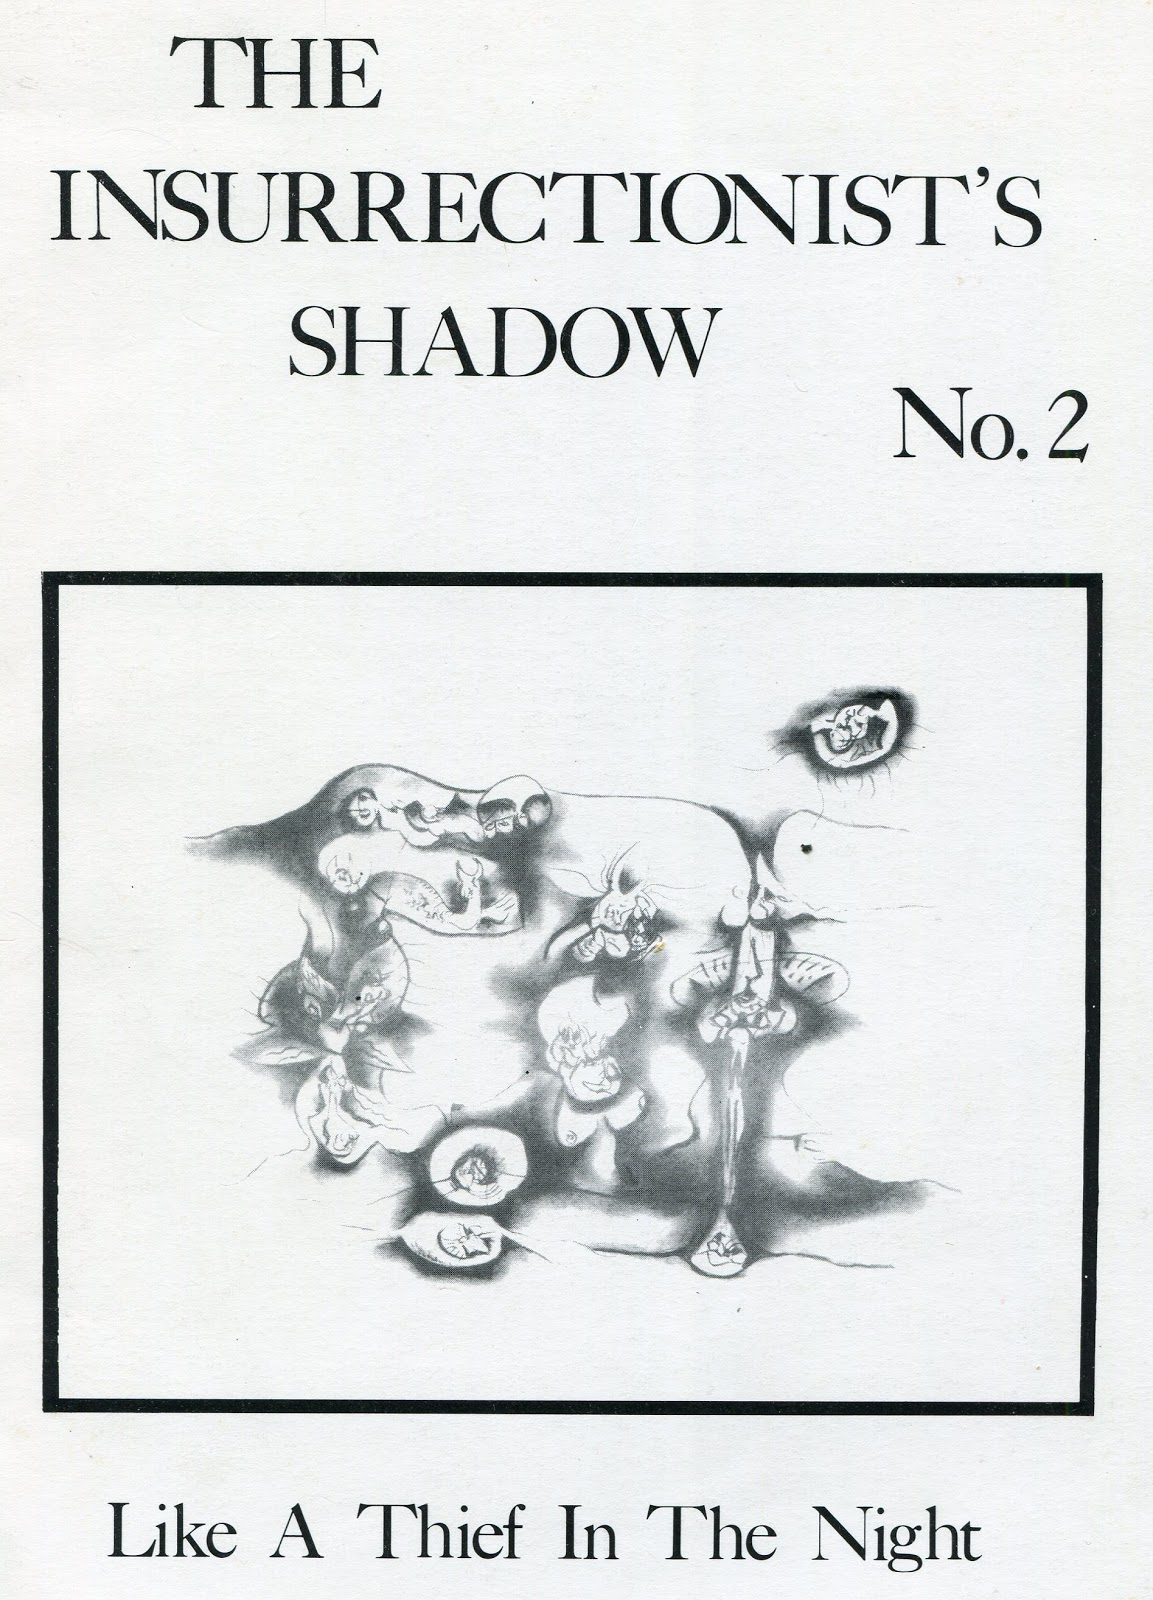 surrealismo internacional surrealismo en 2 it was at this point that craig marvell joined the group in months around the middle of 1980 the second issue of the insurrectionist s shadow was